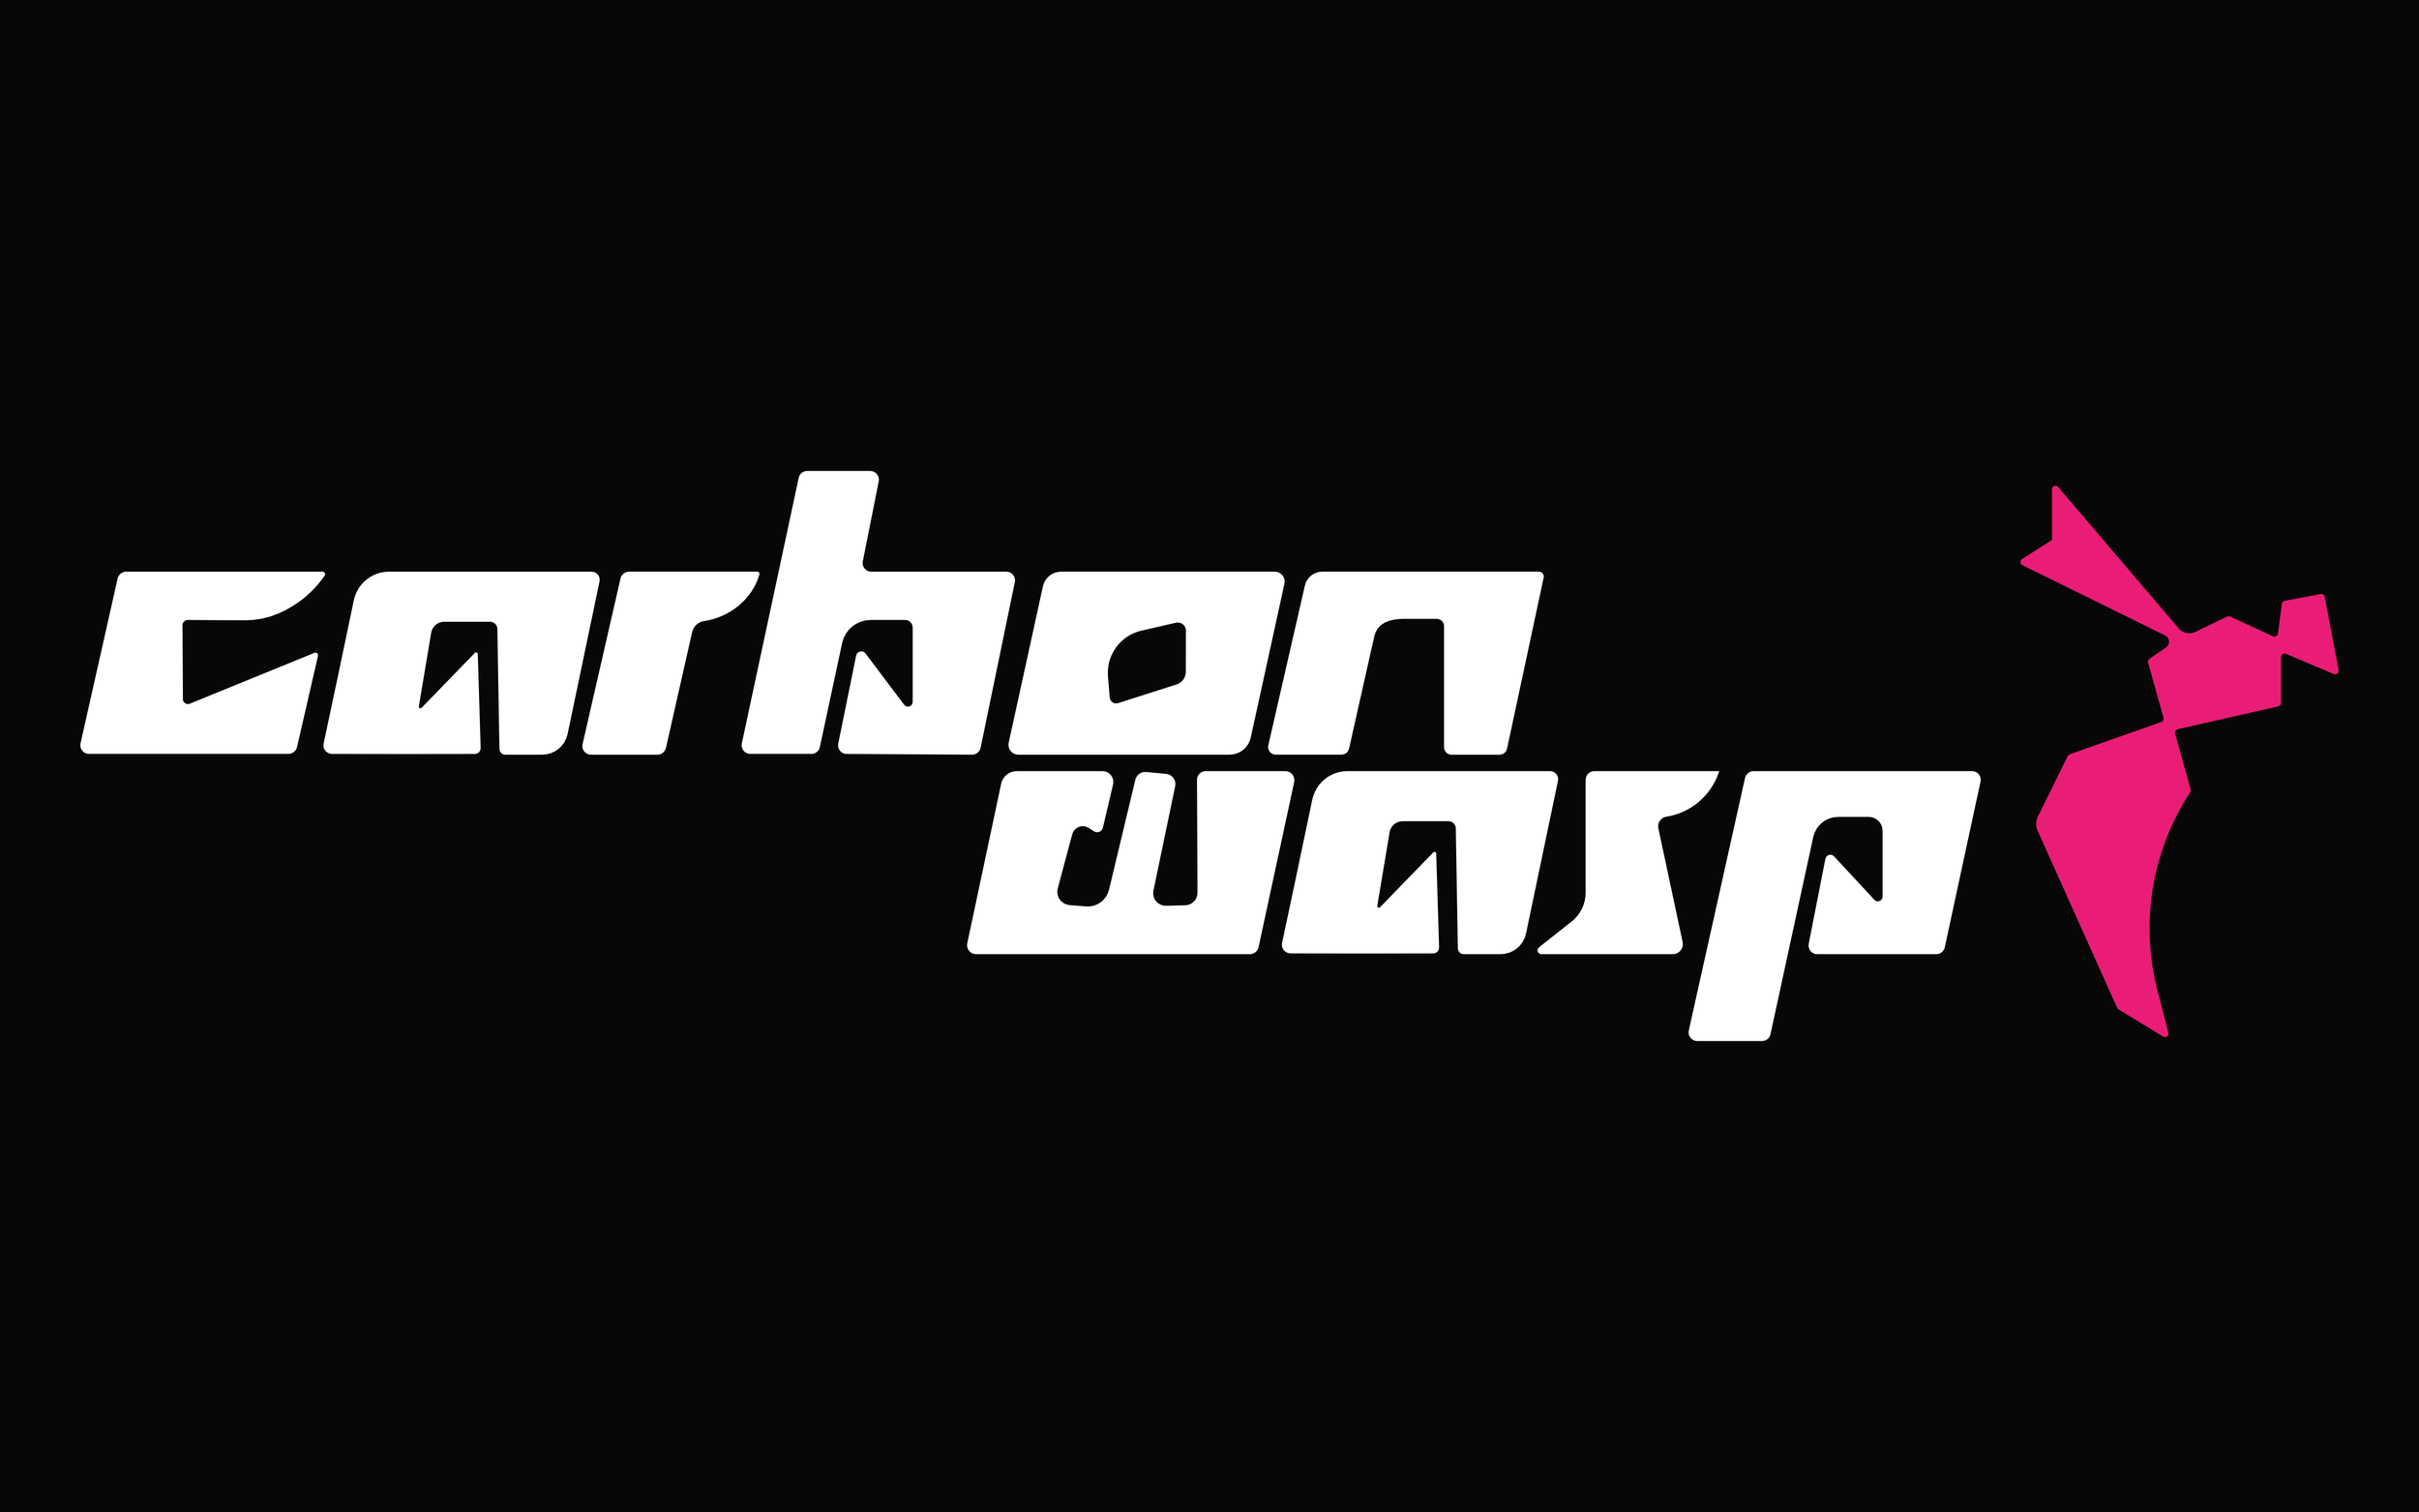 carbon wasp.png